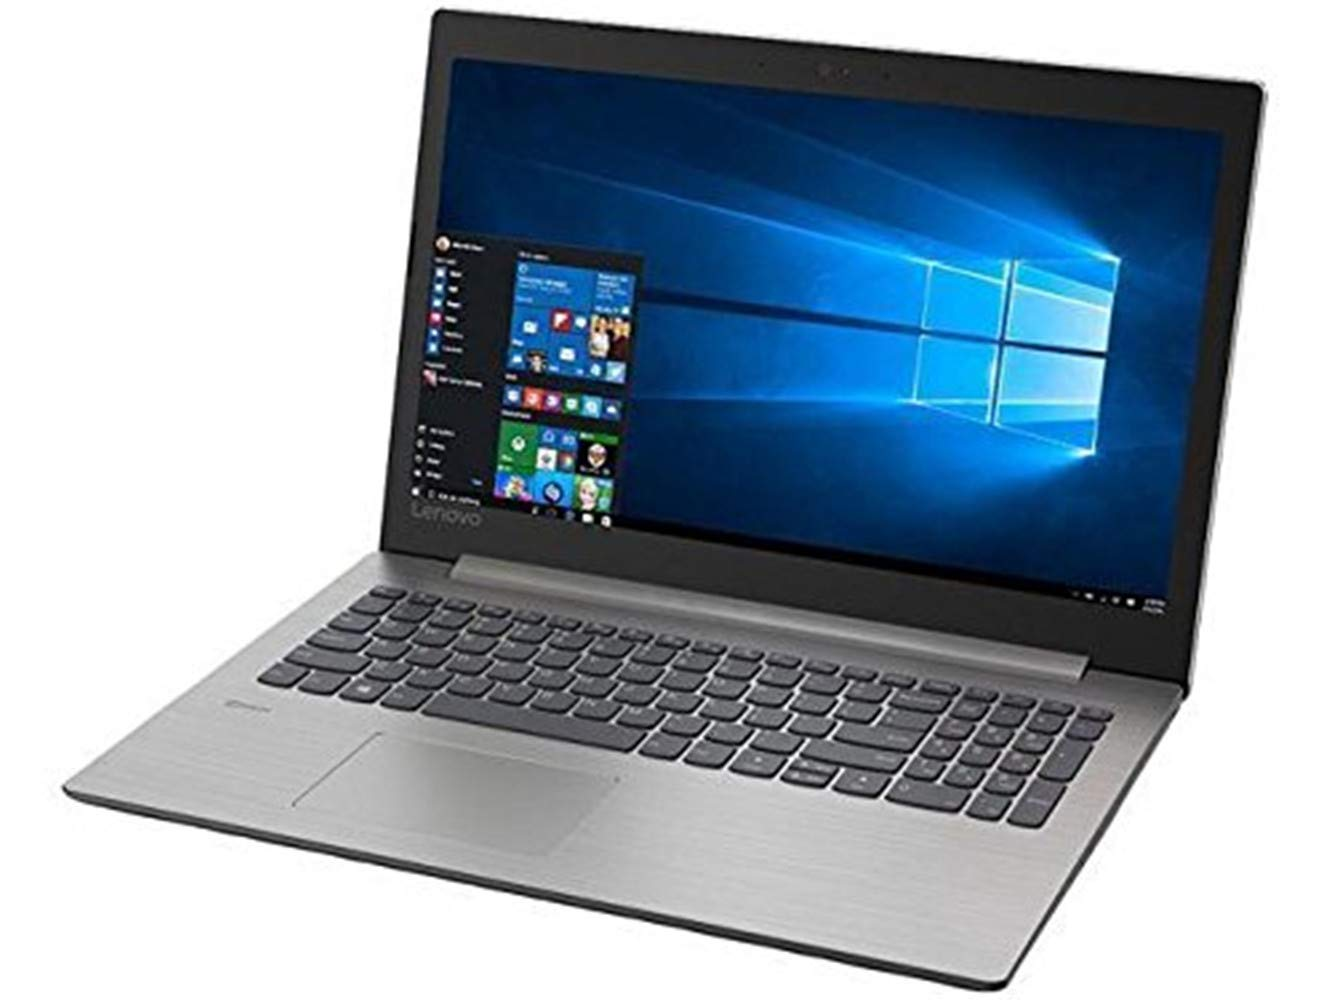 "Lenovo Ideapad 330 15.6"" Touchscreen Laptop Computer,"